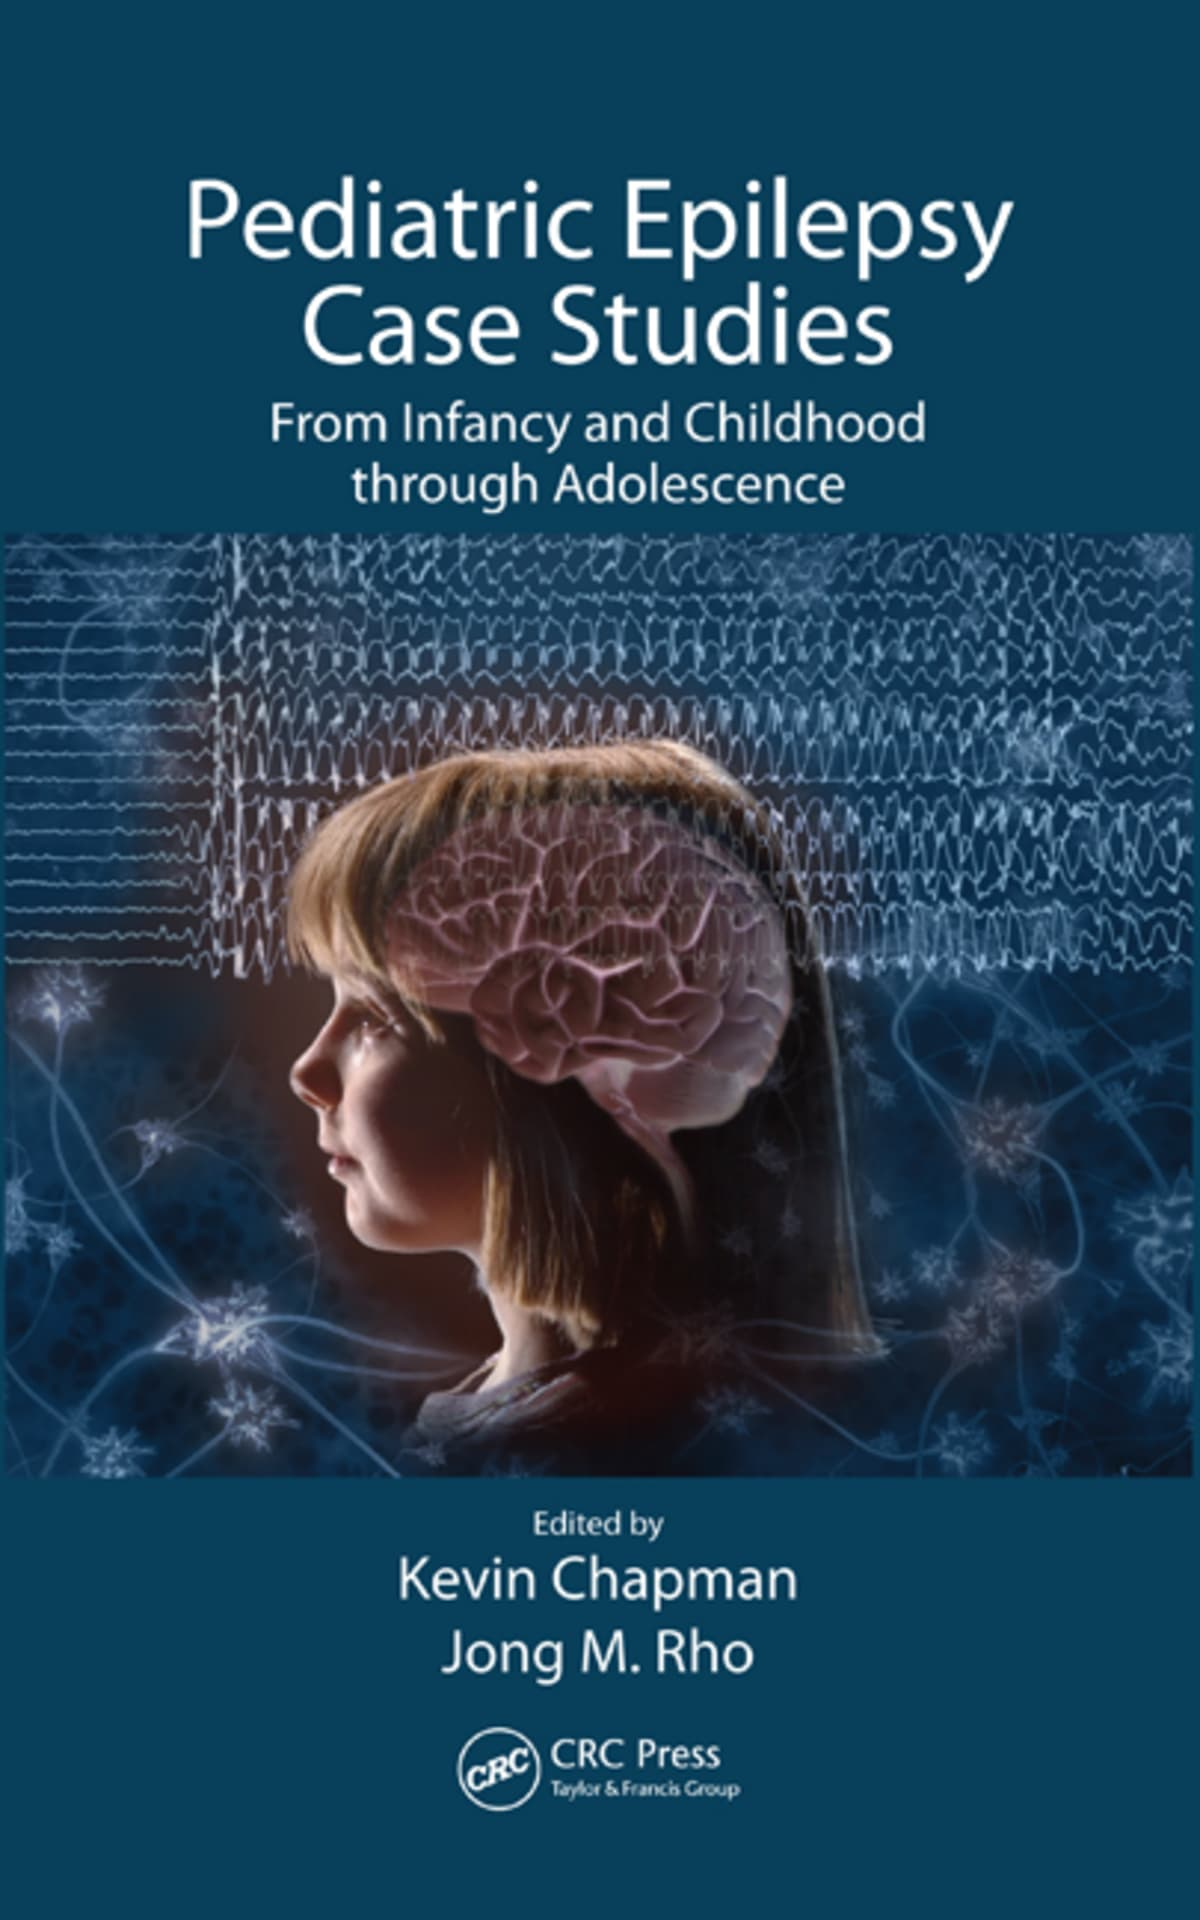 Pediatric Epilepsy Case Studies: From Infancy and Childhood